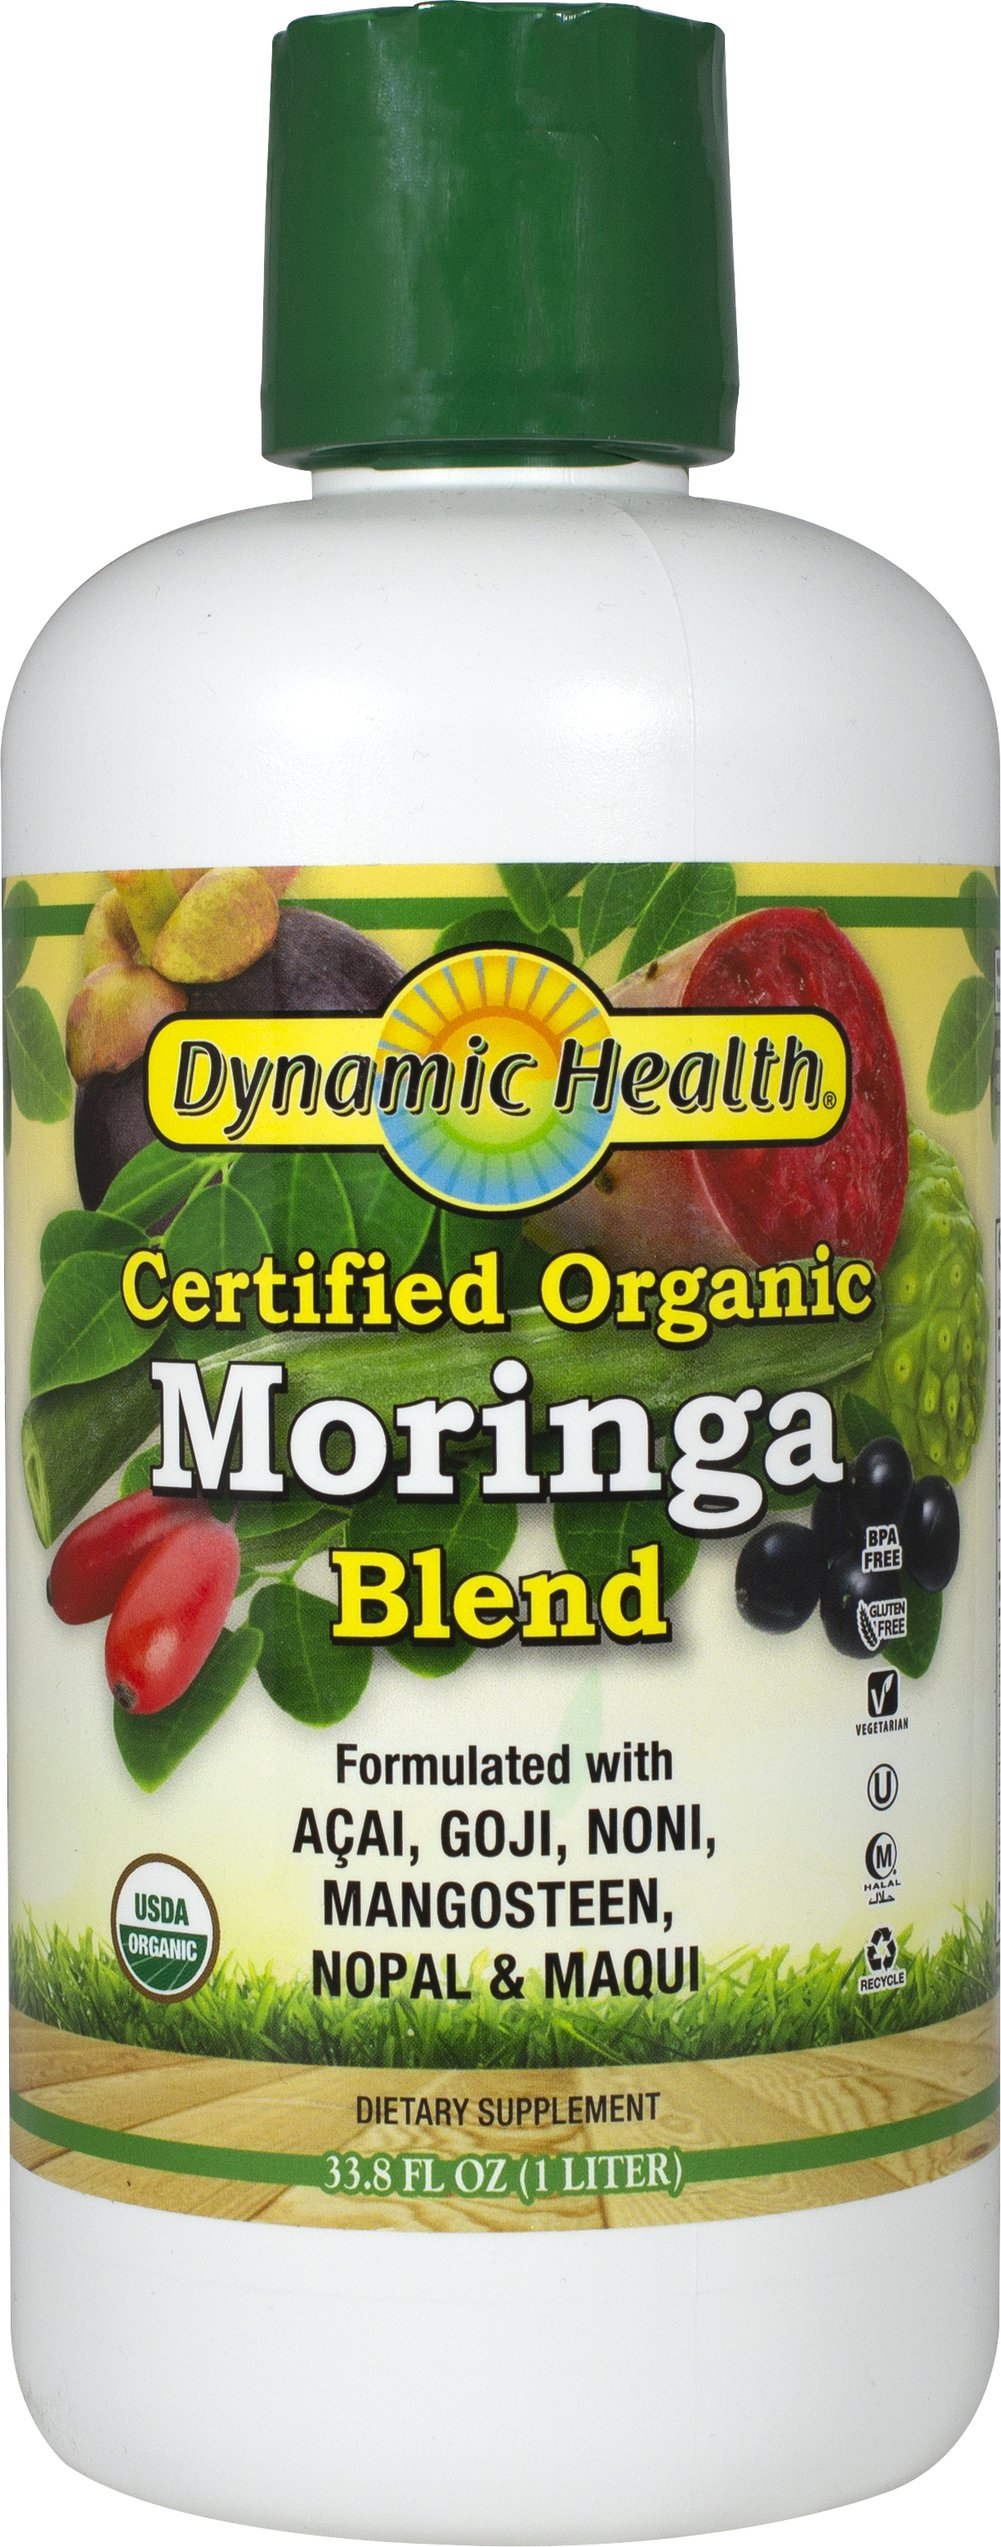 Organic Moringa Juice Blend <p><strong>From the Manufacturer's Label: </strong></p><p>Dynamic Health's Organic Moringa oleifera Juice Blend has natural energy boosting abilities.** The Moringa oleifera tree's leaves are nutrient dense in vitamins and minerals.** It is a tonic for good overall health.**</p><p>The antioxidant rich elixir offers the synergy of Certified Organic Maqui, Acai, Goji, Noni, Mangosteen and Nopal to promote healthy liv